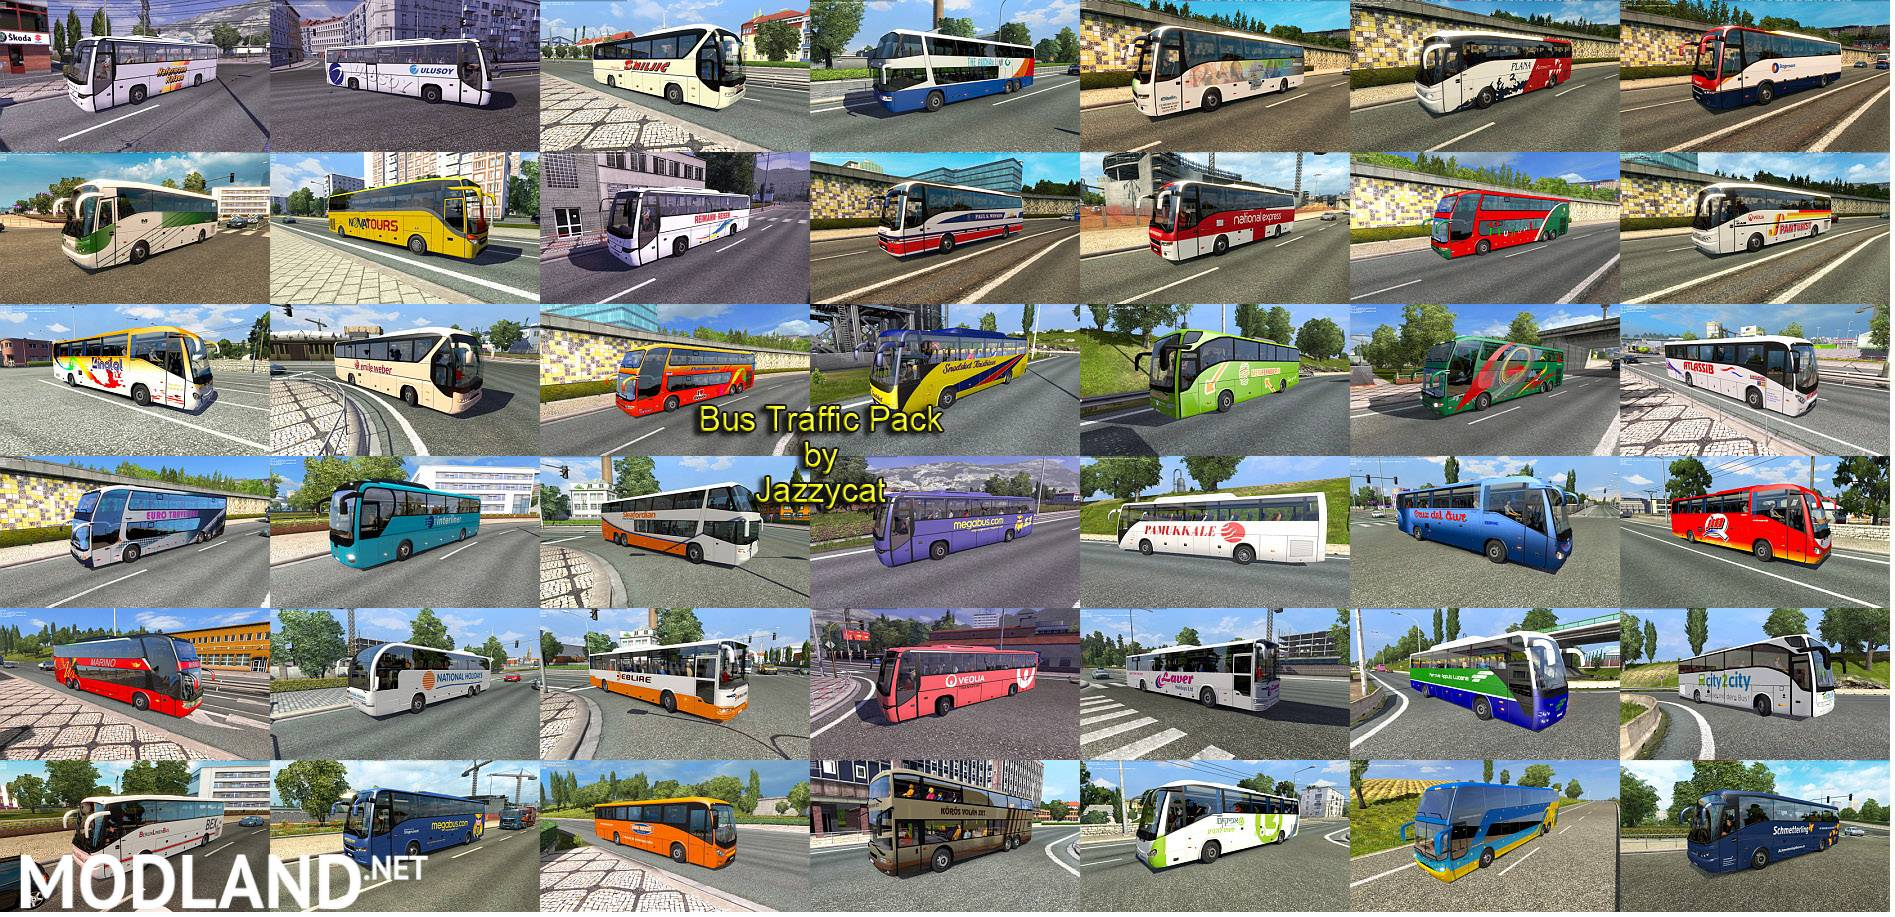 Bus traffic pack by Jazzycat v 1 3 1 mod for ETS 2